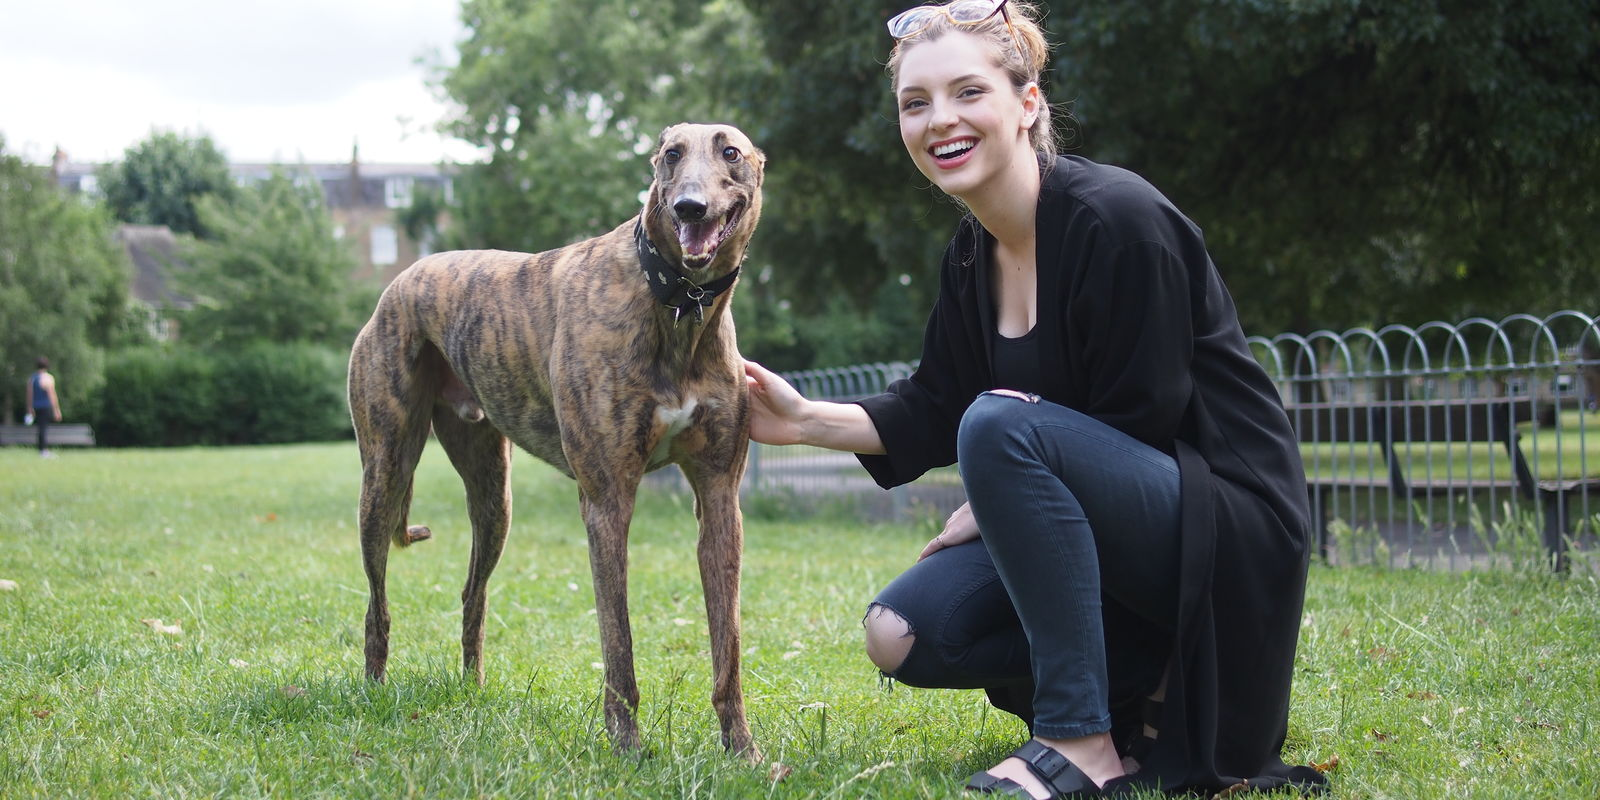 Estee and her greyhound Reggie